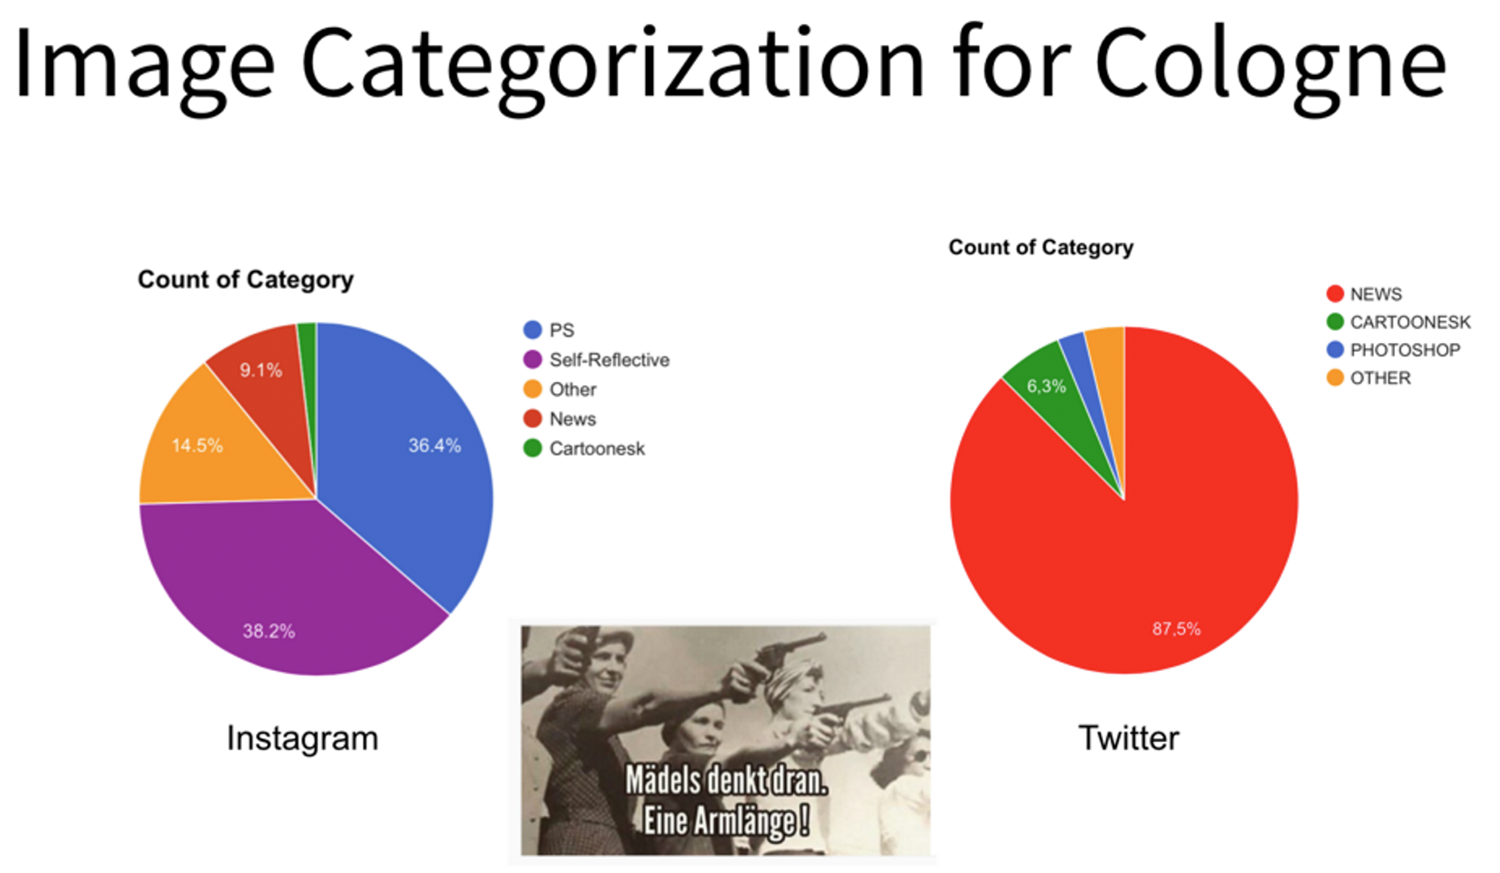 11-image-categorization-cologne.png